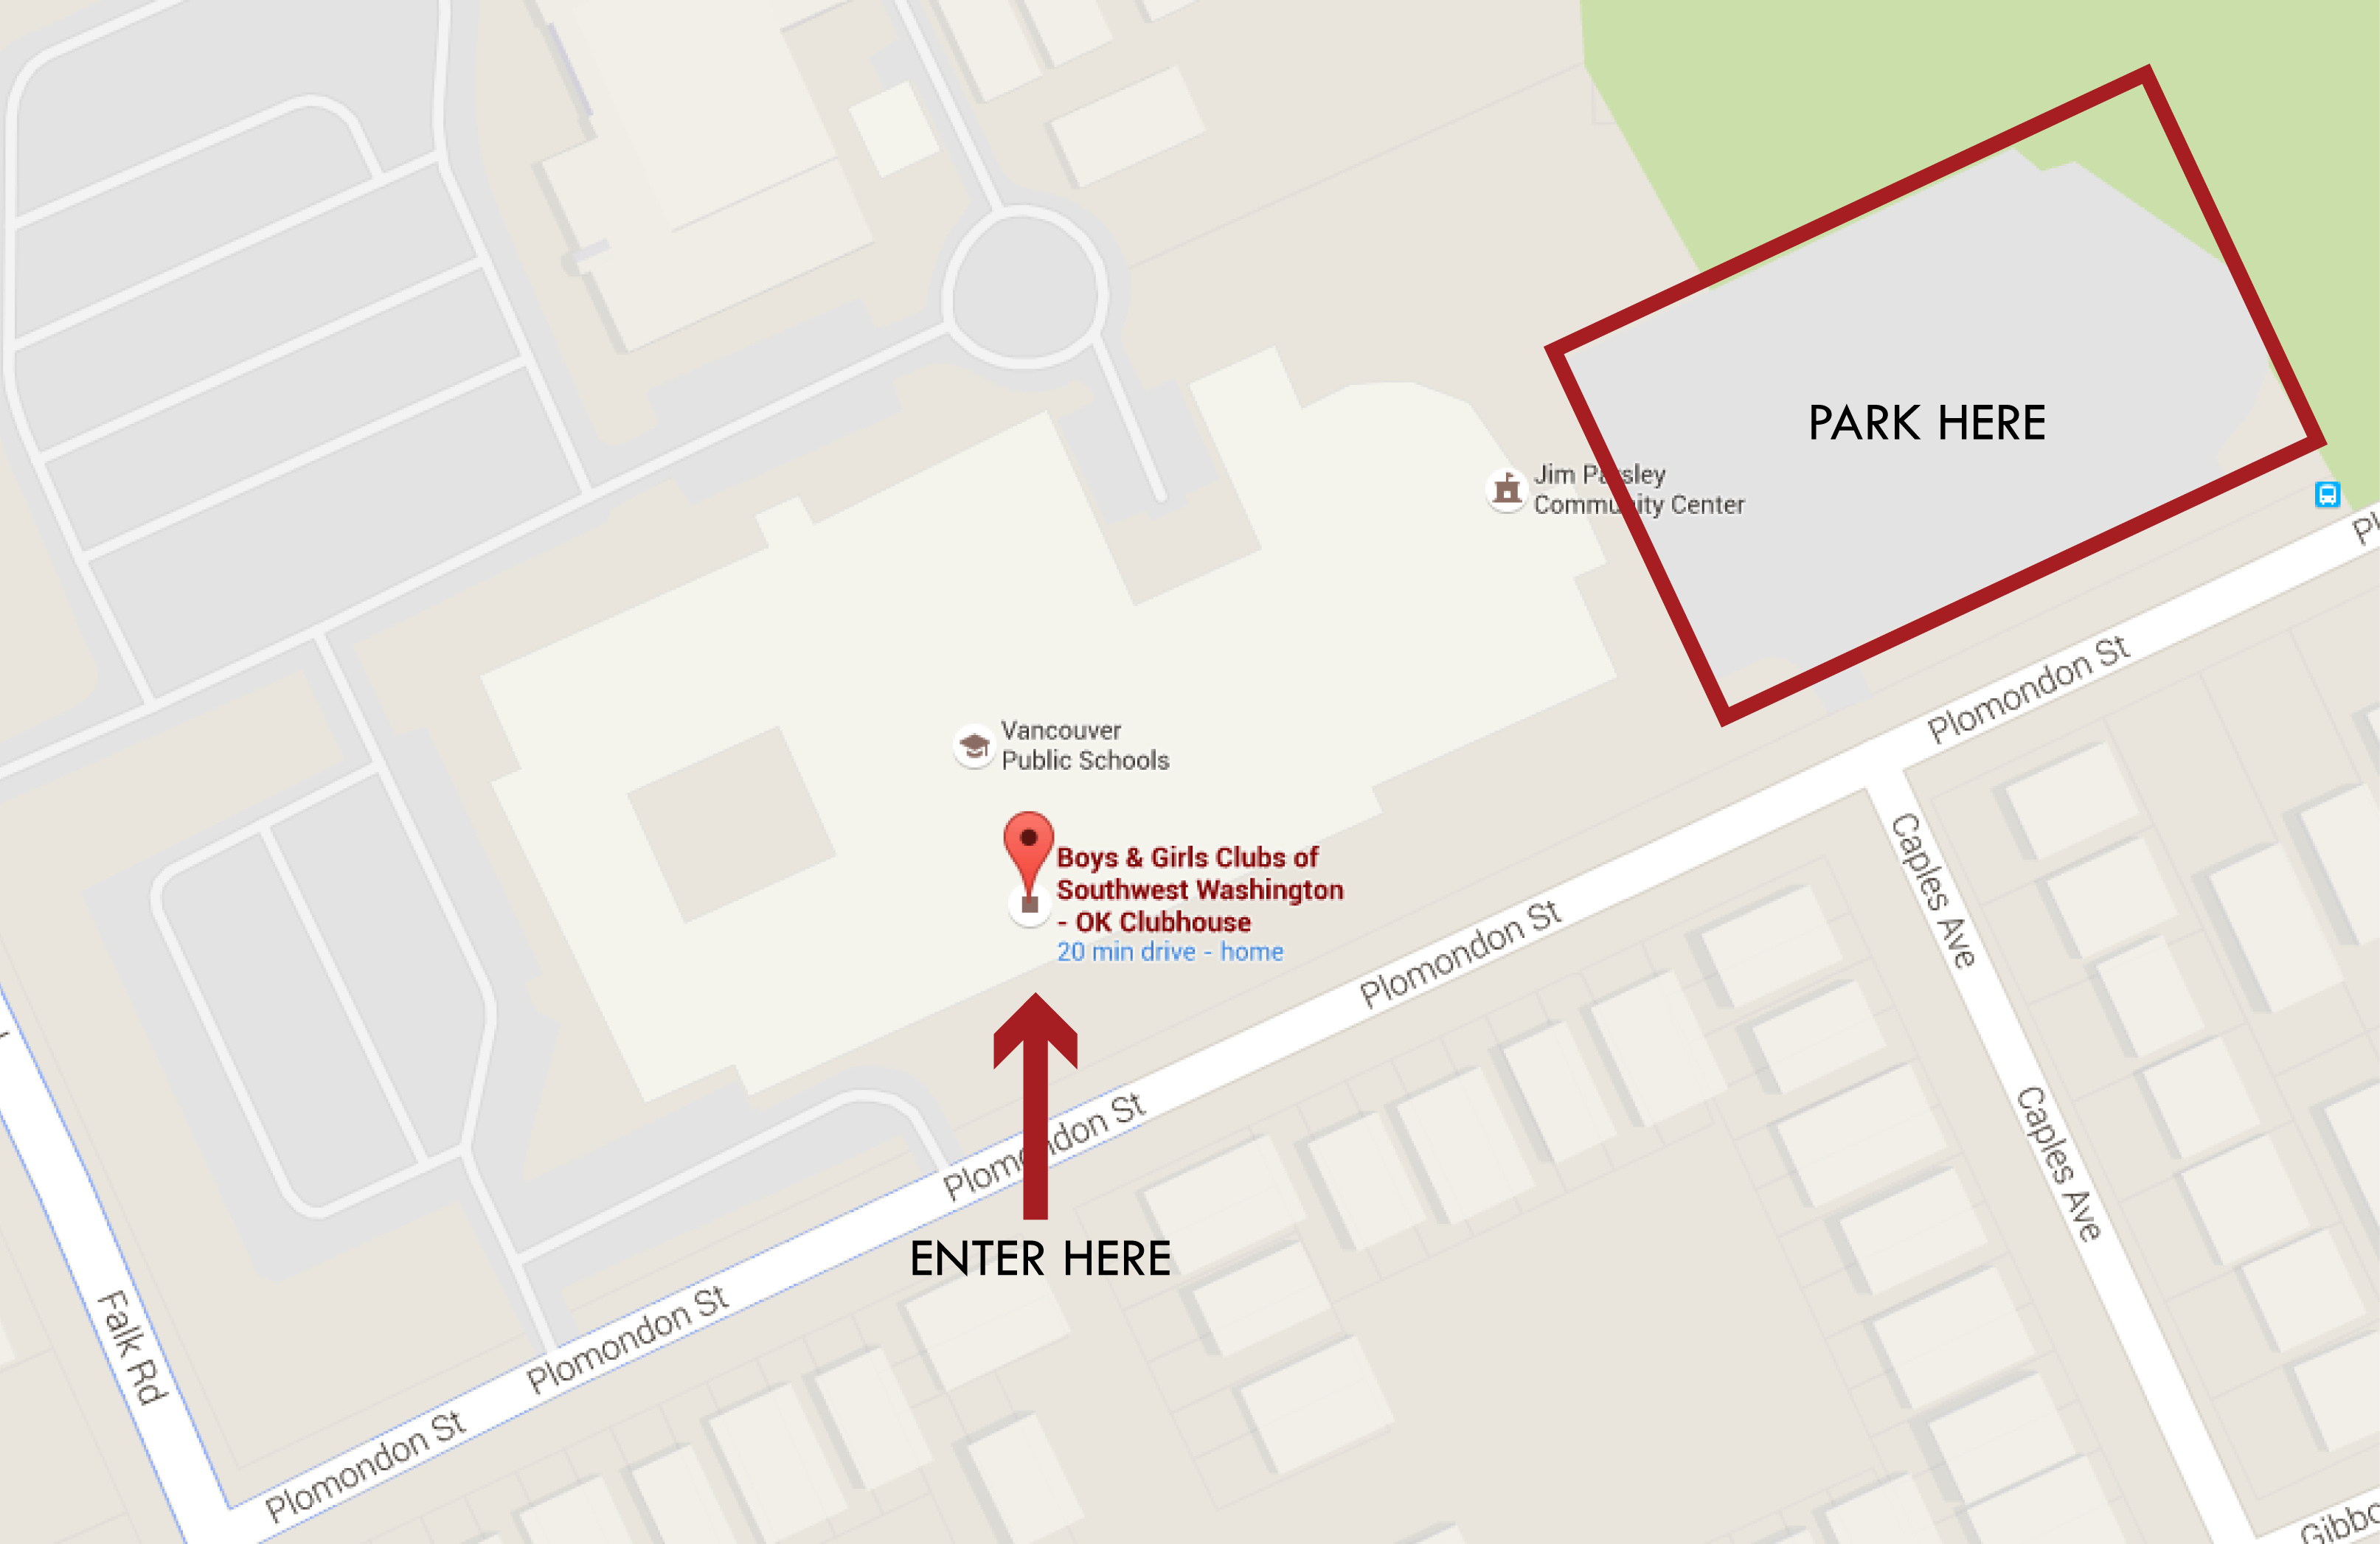 O.K. Clubhouse Annotated Map for Parking & Entrance